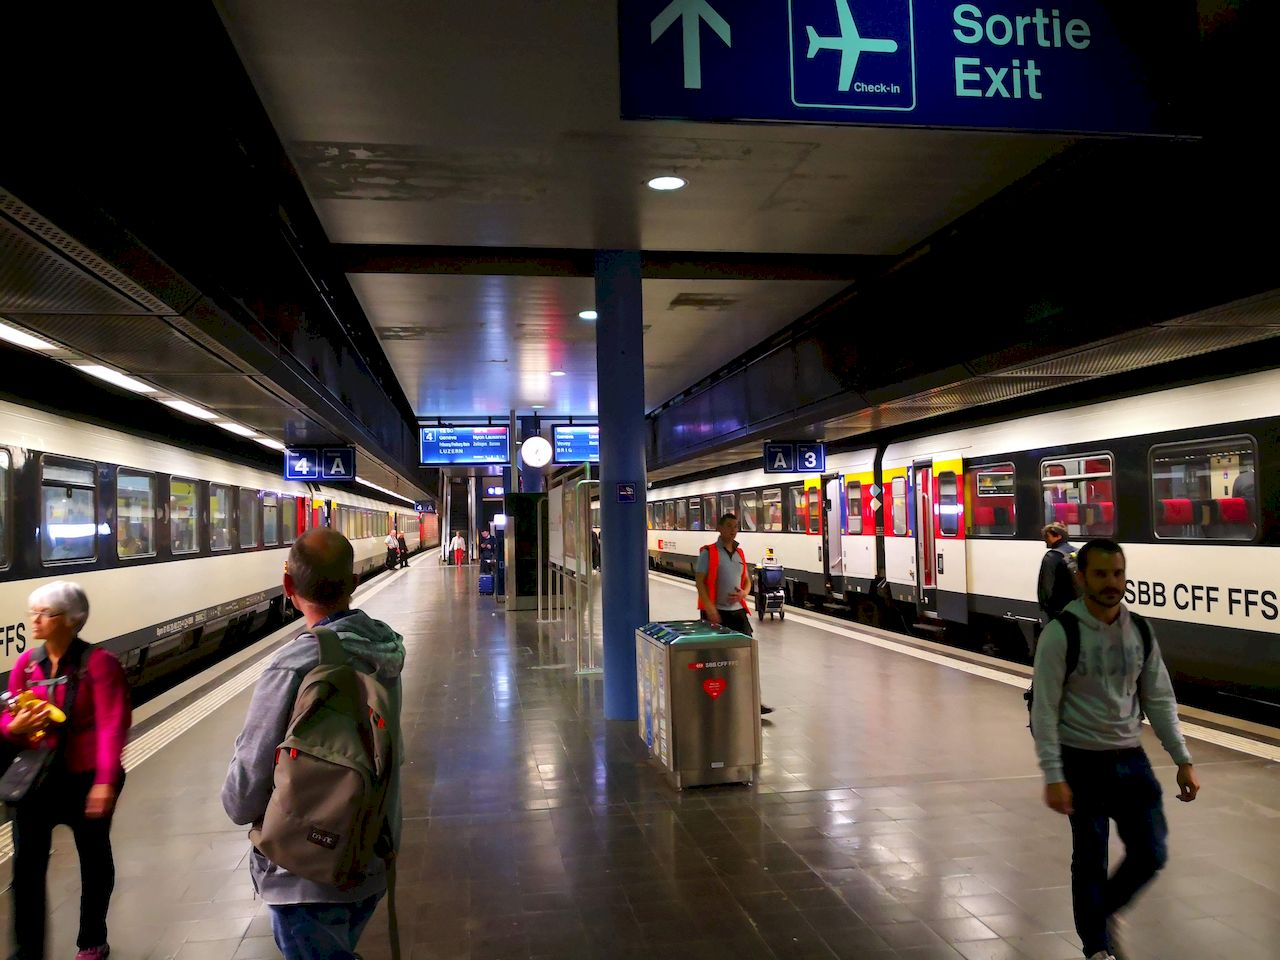 5 Years On - Can You Travel? Geneva Airport Railway Station